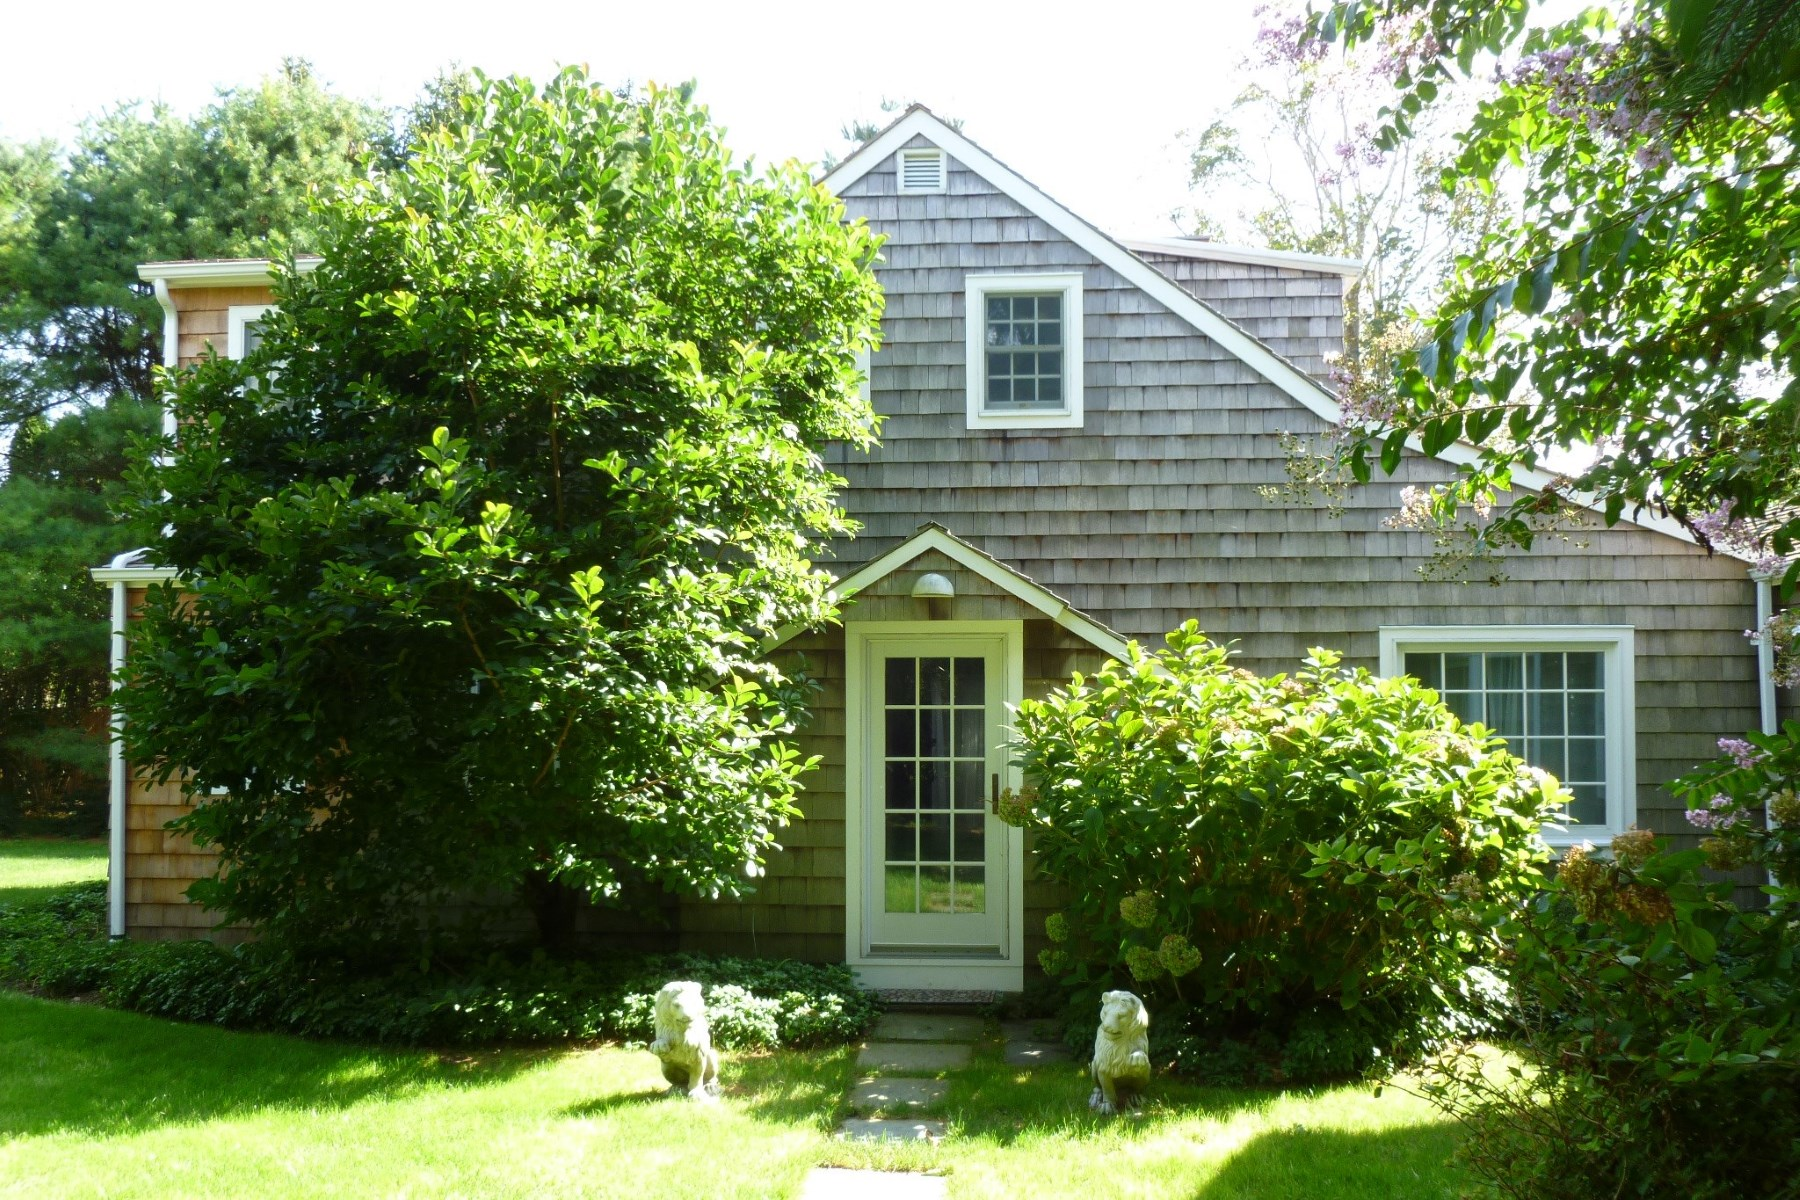 Single Family Home for Rent at Georgica Carriage House 57 Lee Avenue East Hampton, New York 11937 United States